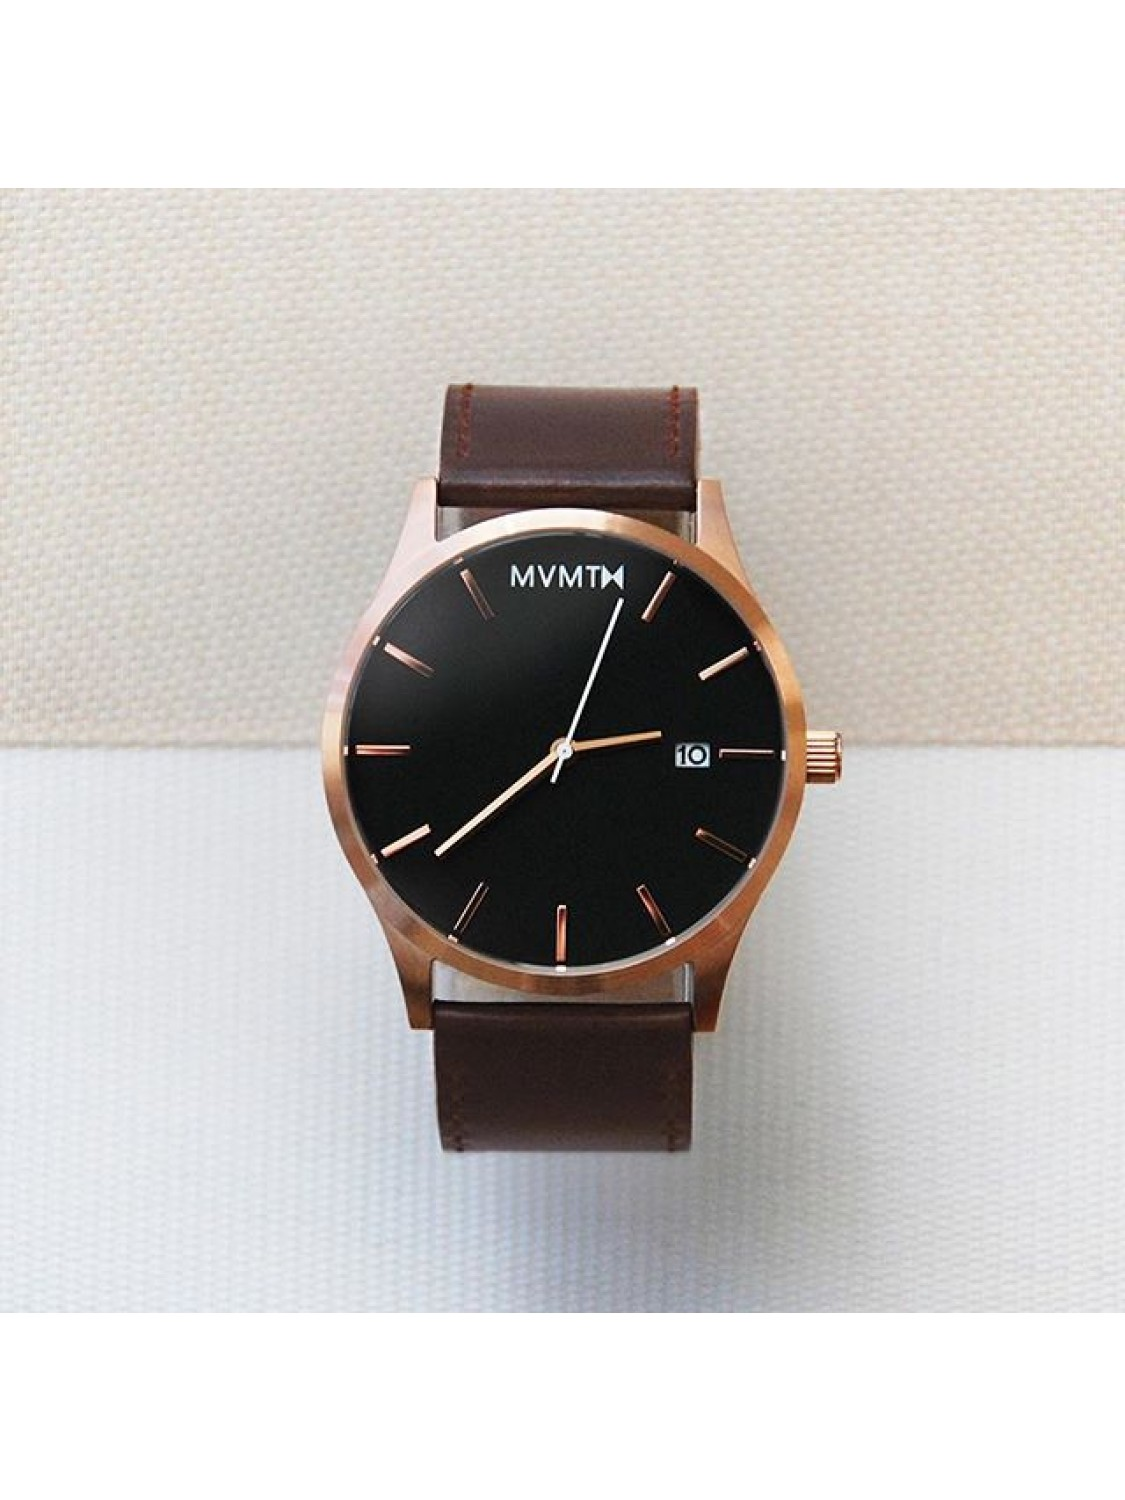 MVMT Rosegold / Brown Leather-00